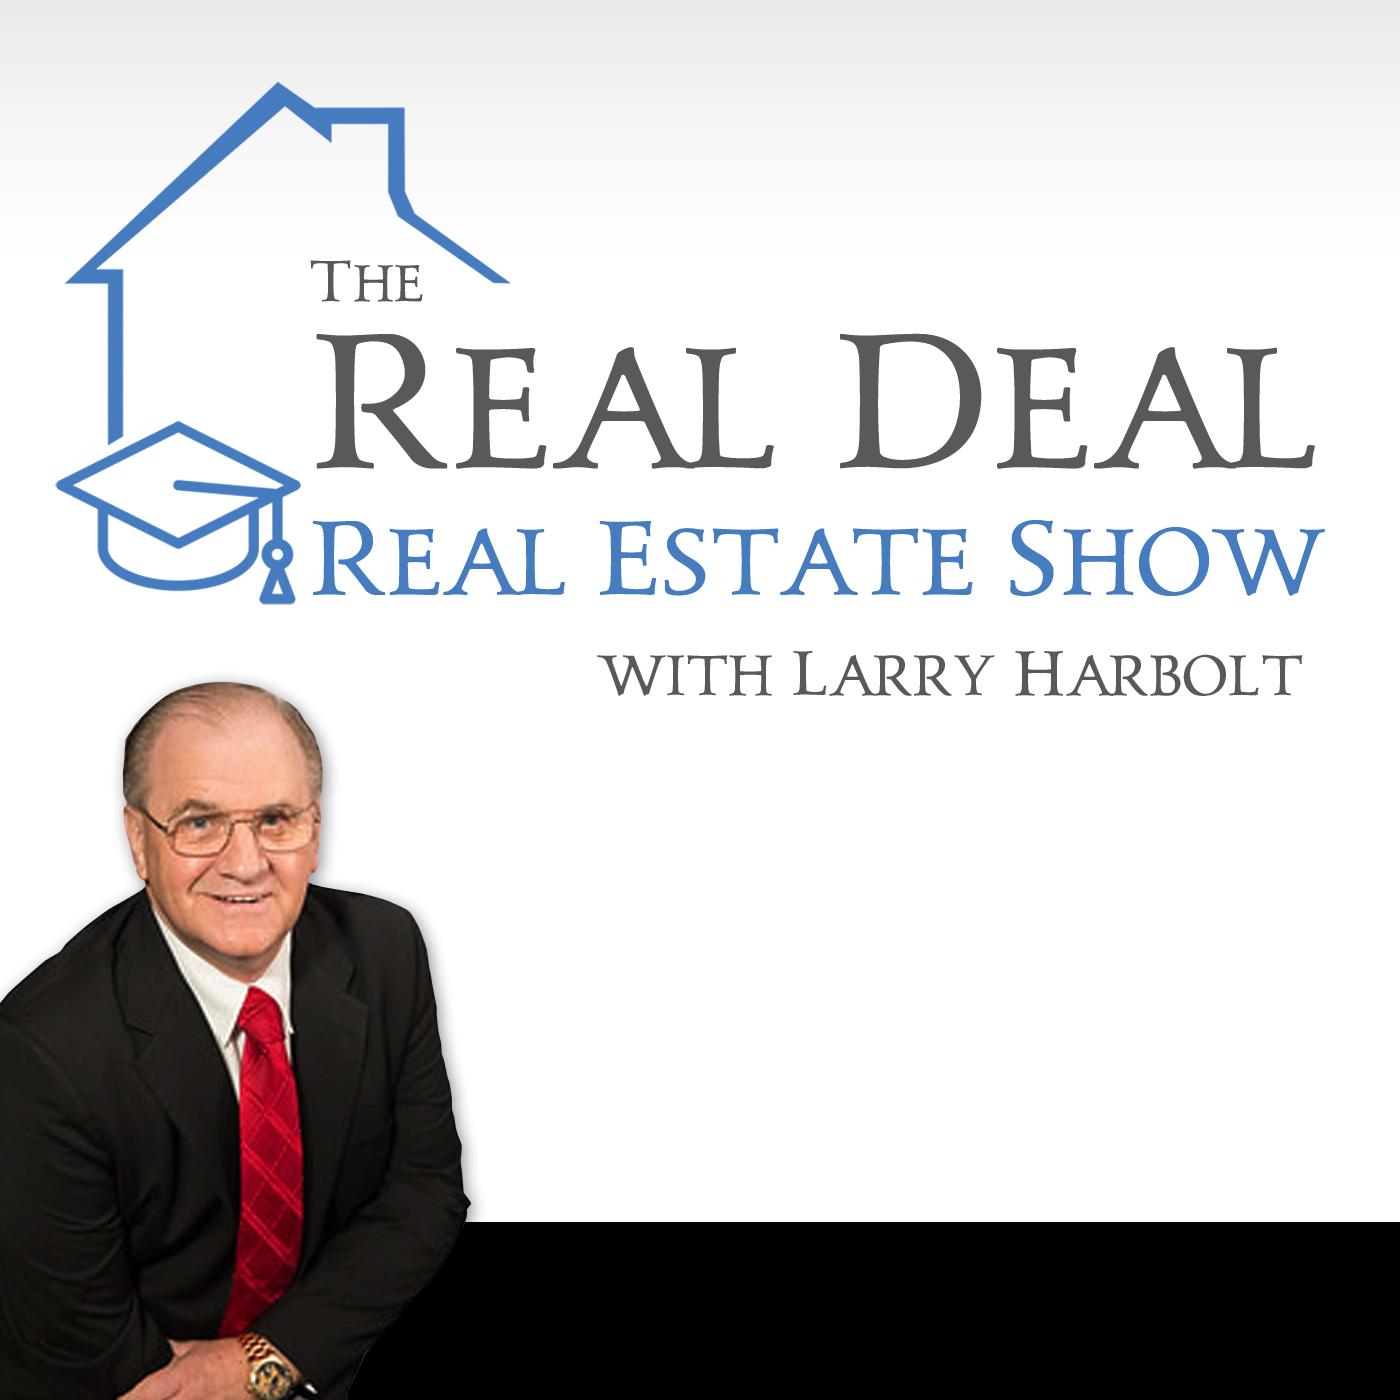 027 Going to Real Estate Meetings Can't Teach You How to Invest